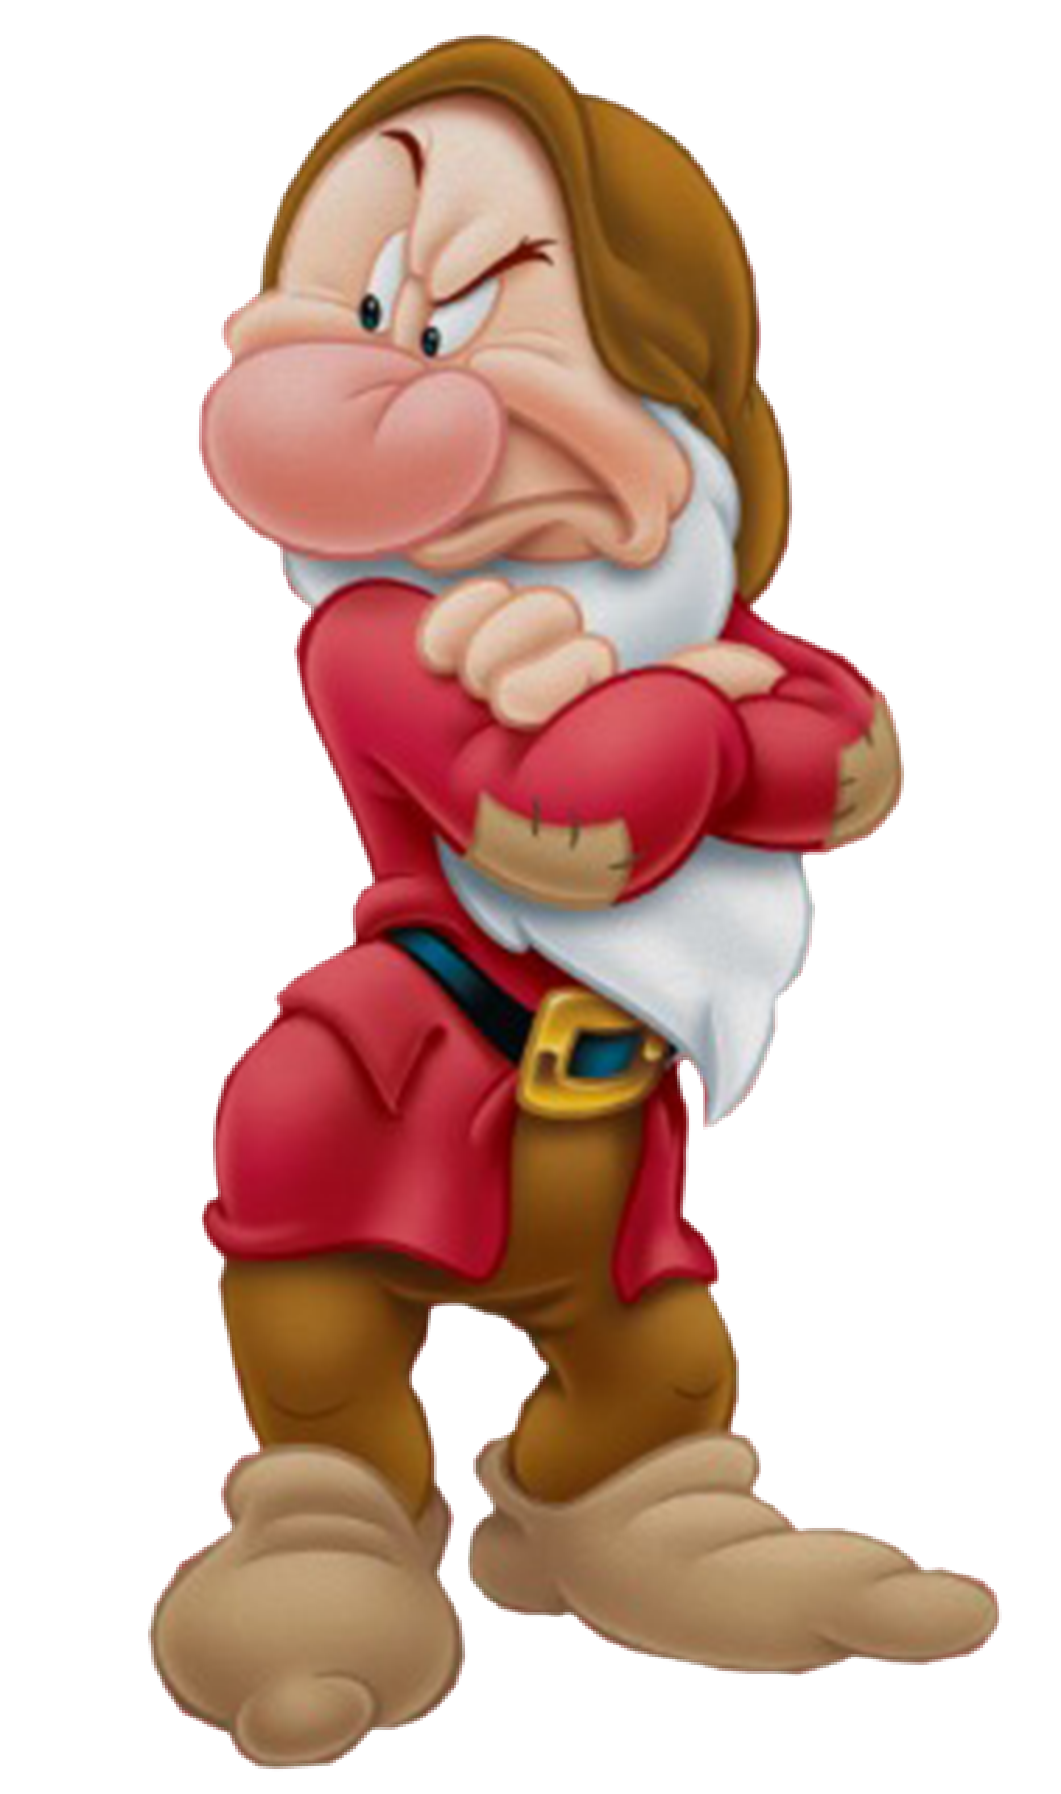 Disney upset character clipart image freeuse library Grumpy   Disney Wiki   Fandom powered by Wikia image freeuse library